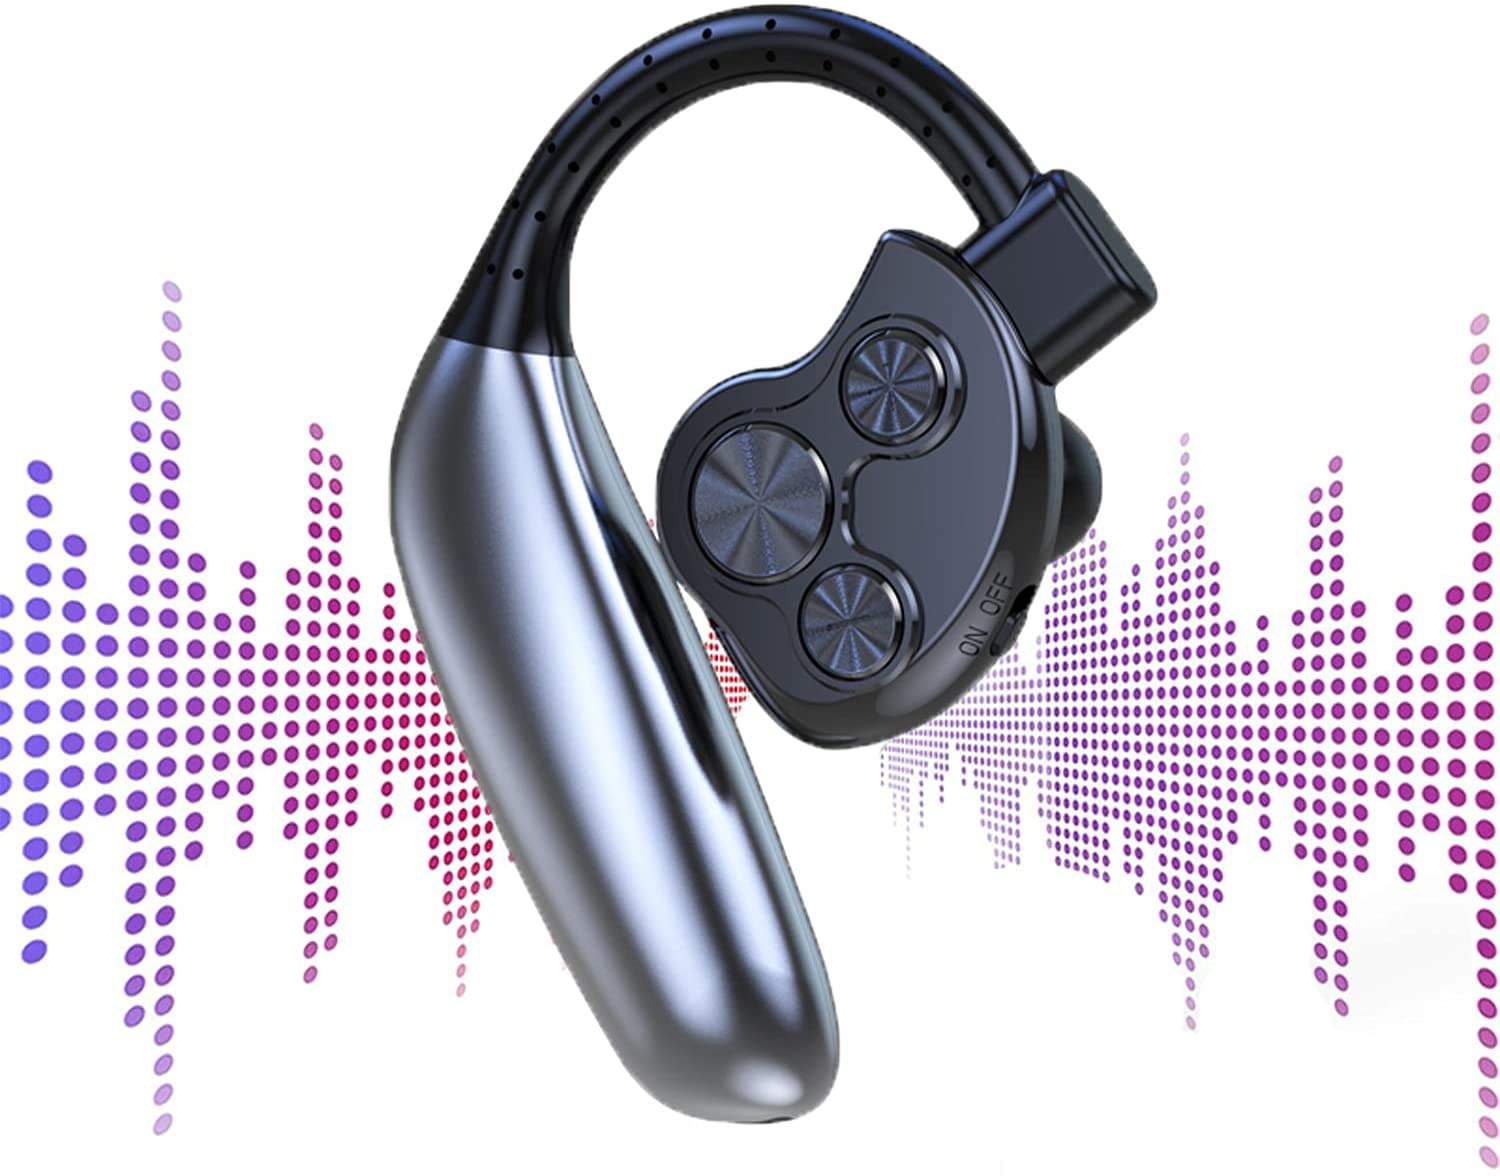 Voice Recorder, Earphone Digital Voice Activated Recording USB Flash Drive Portable MP3 Player